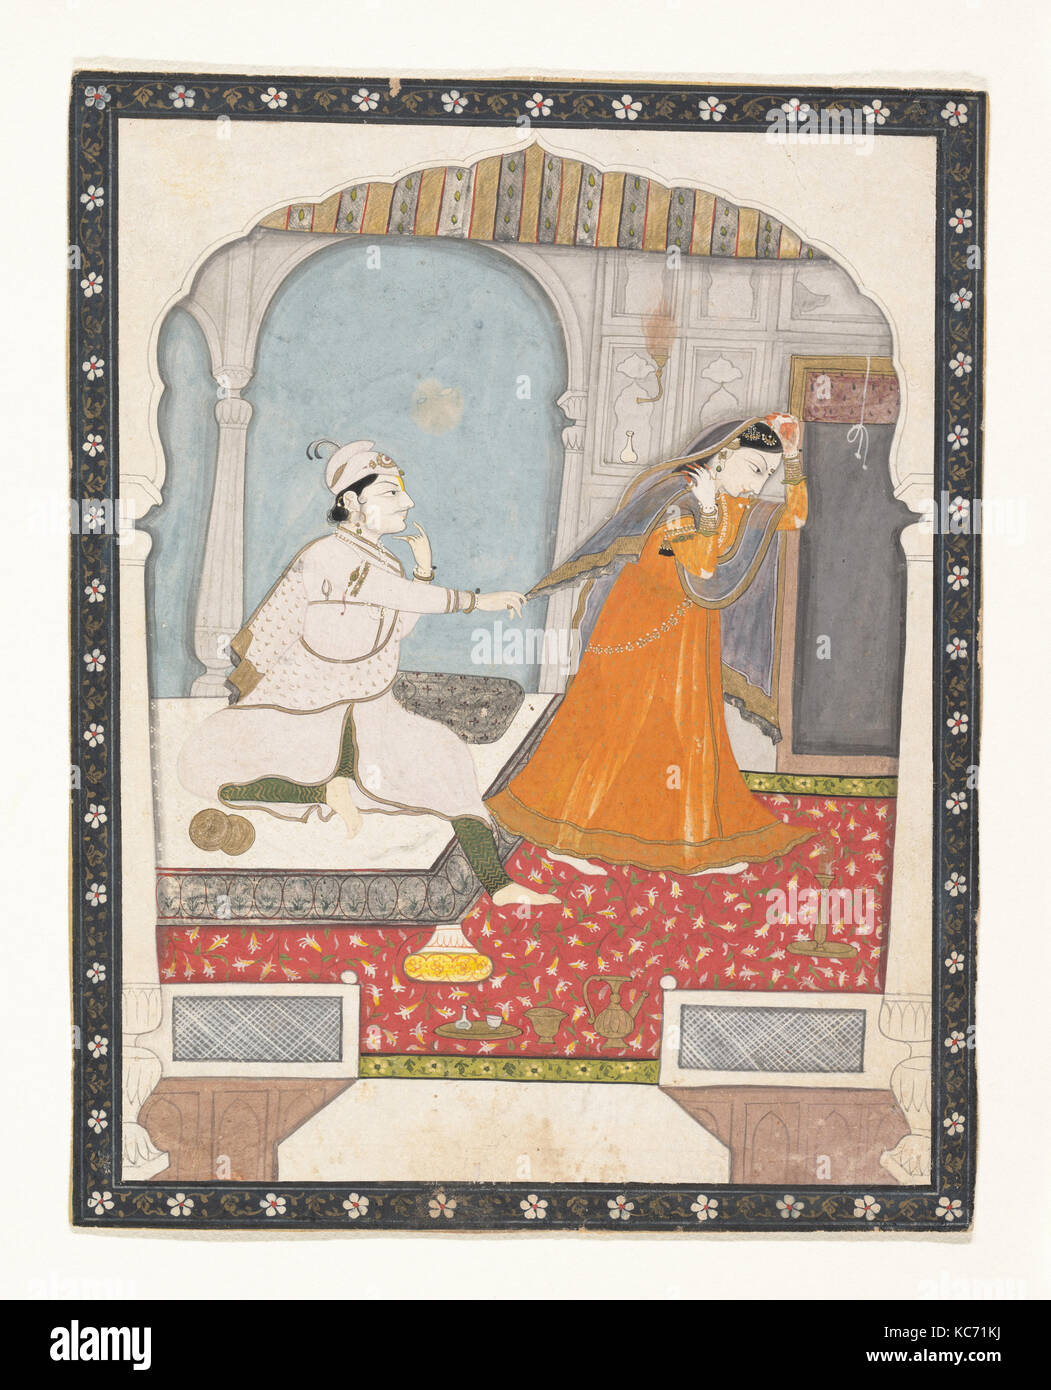 The Timid Bride, ca. 1800, India (Punjab Hills, Kangra), Ink, opaque watercolor, and gilt on paper, 7 1/4 x 5 13/16 - Stock Image